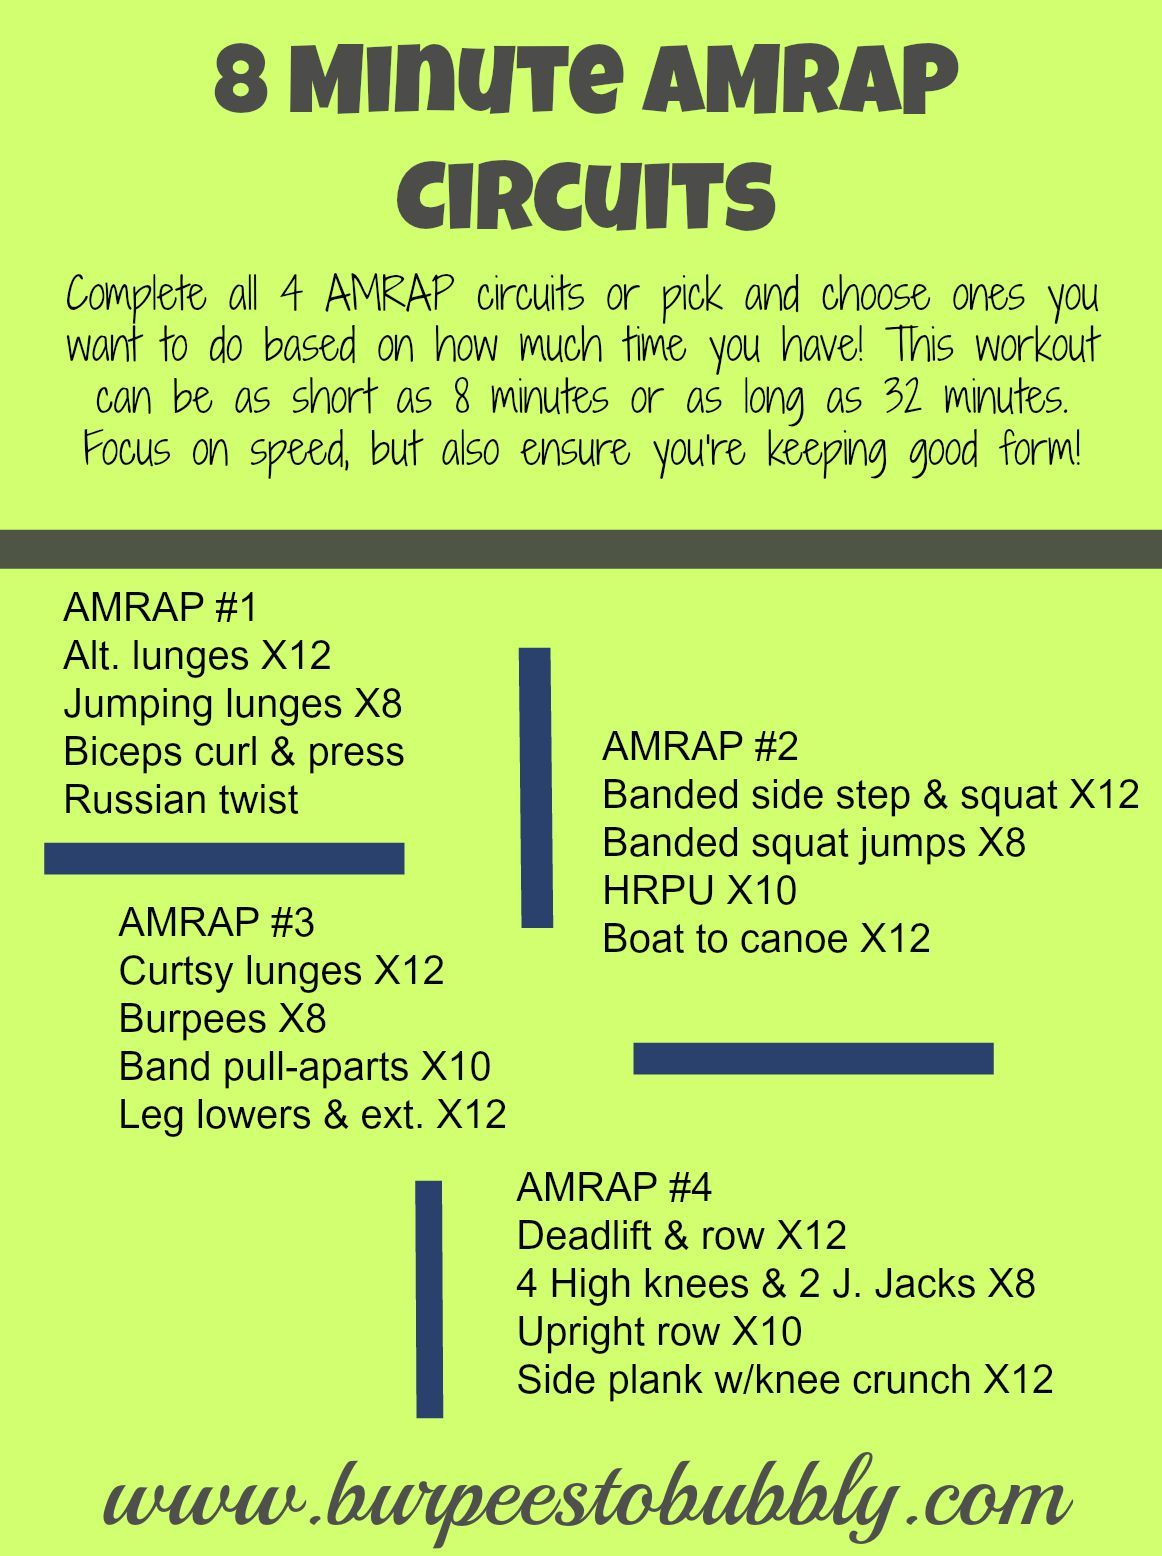 wednesday workout 8 minute amrap circuits (burpees to bubblywednesday workout 8 minute amrap circuits